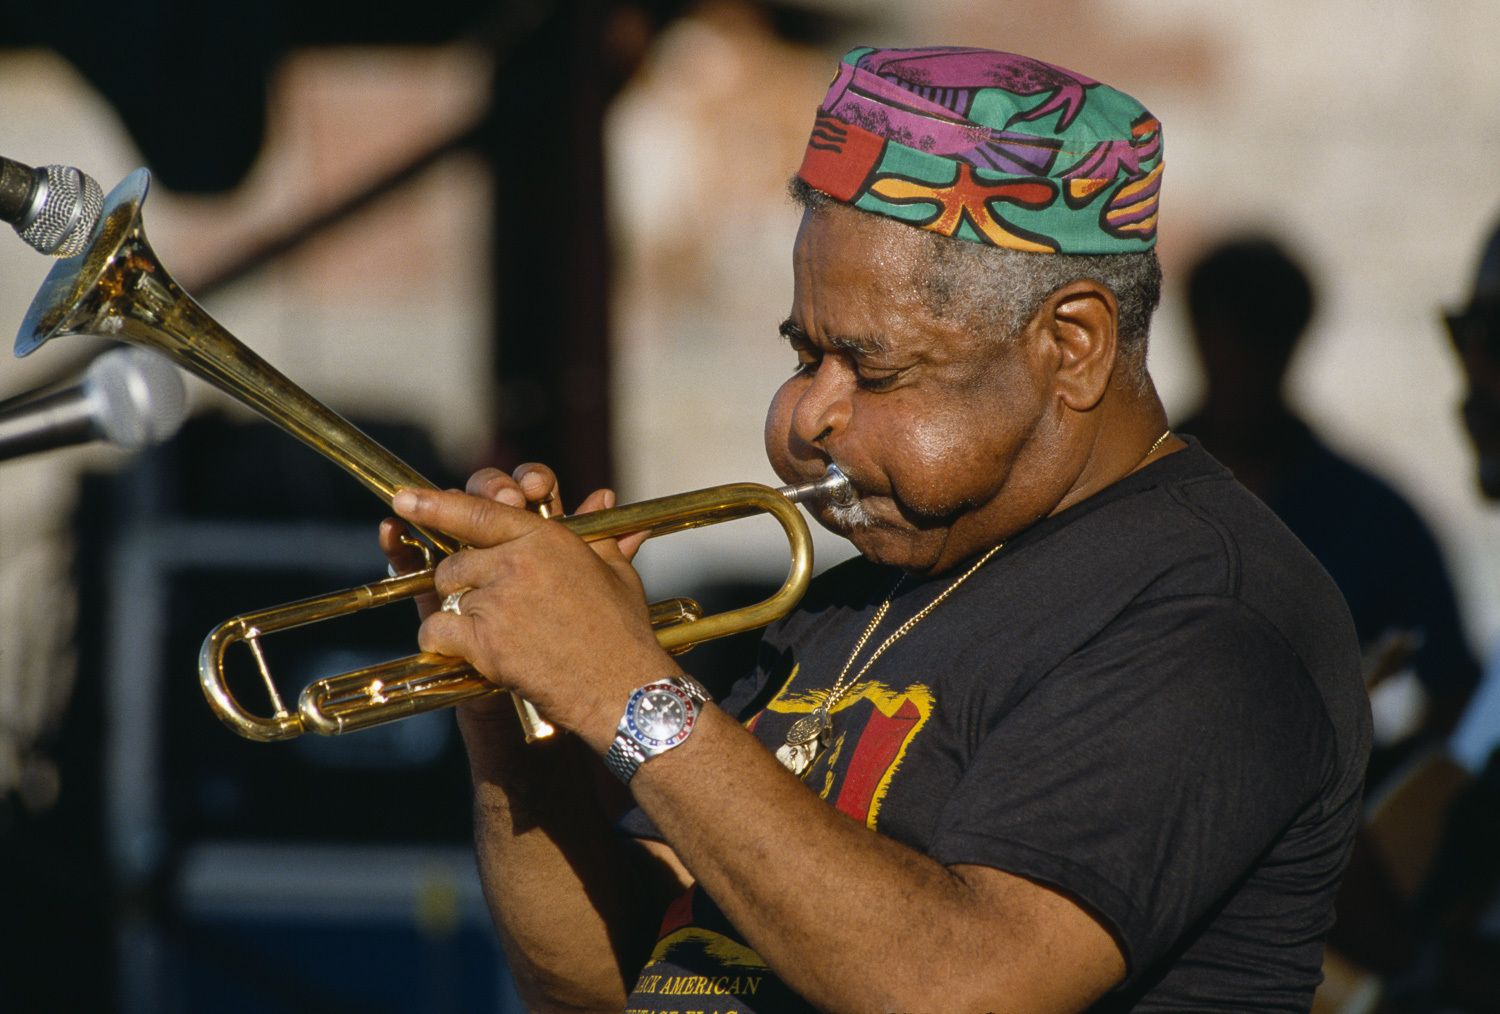 Dizzy Gillespie and his unique trumpet style